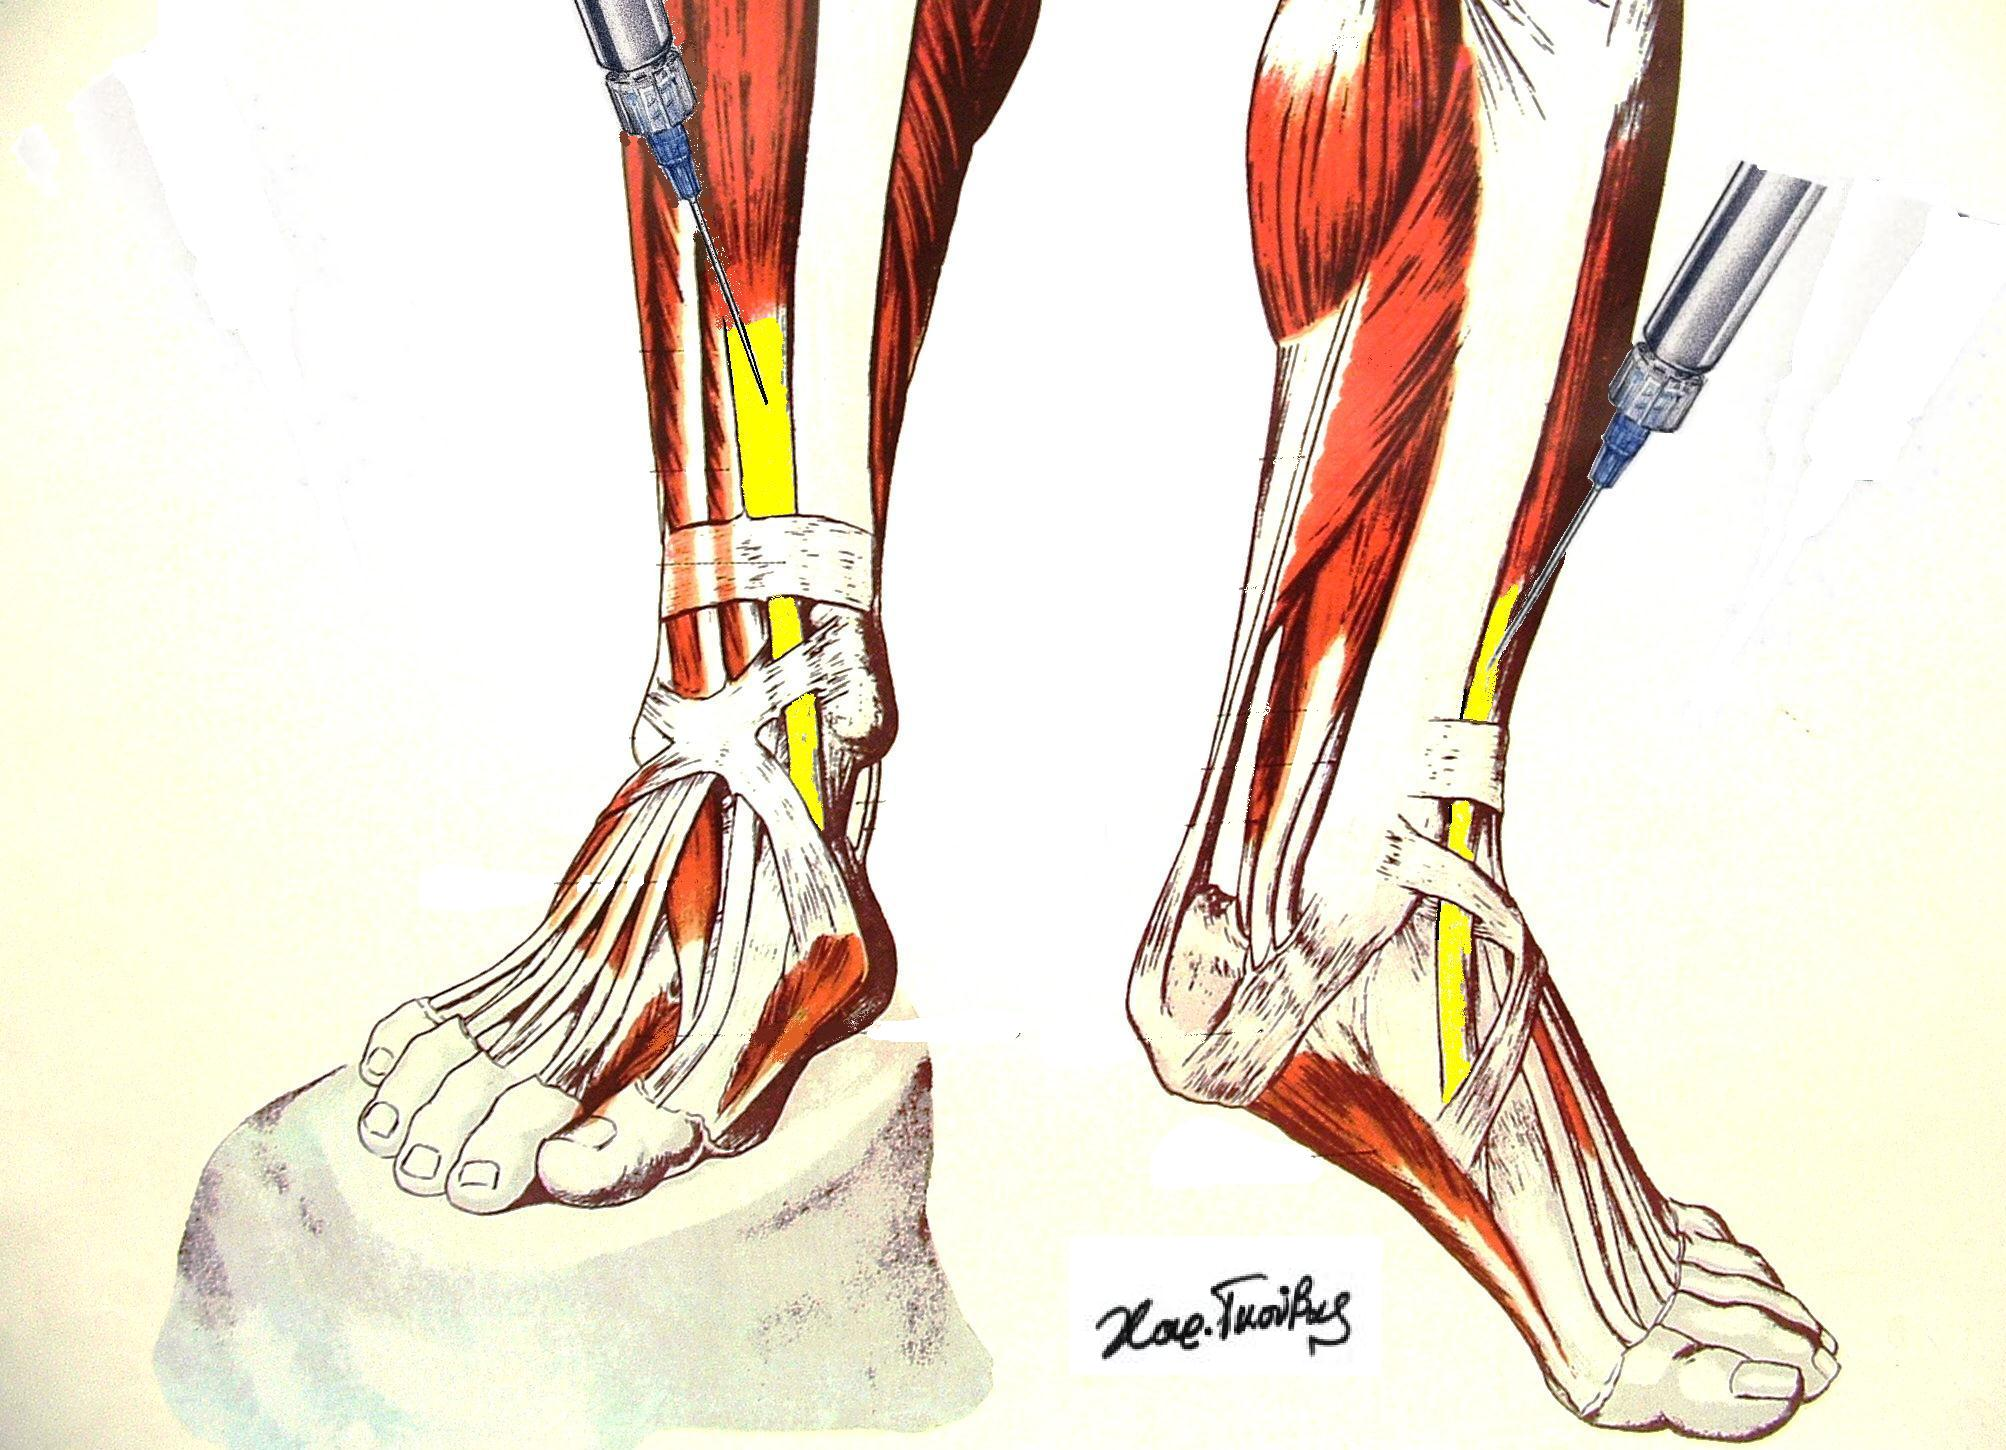 File:Tibialis Anterior injection.jpg - Wikimedia Commons